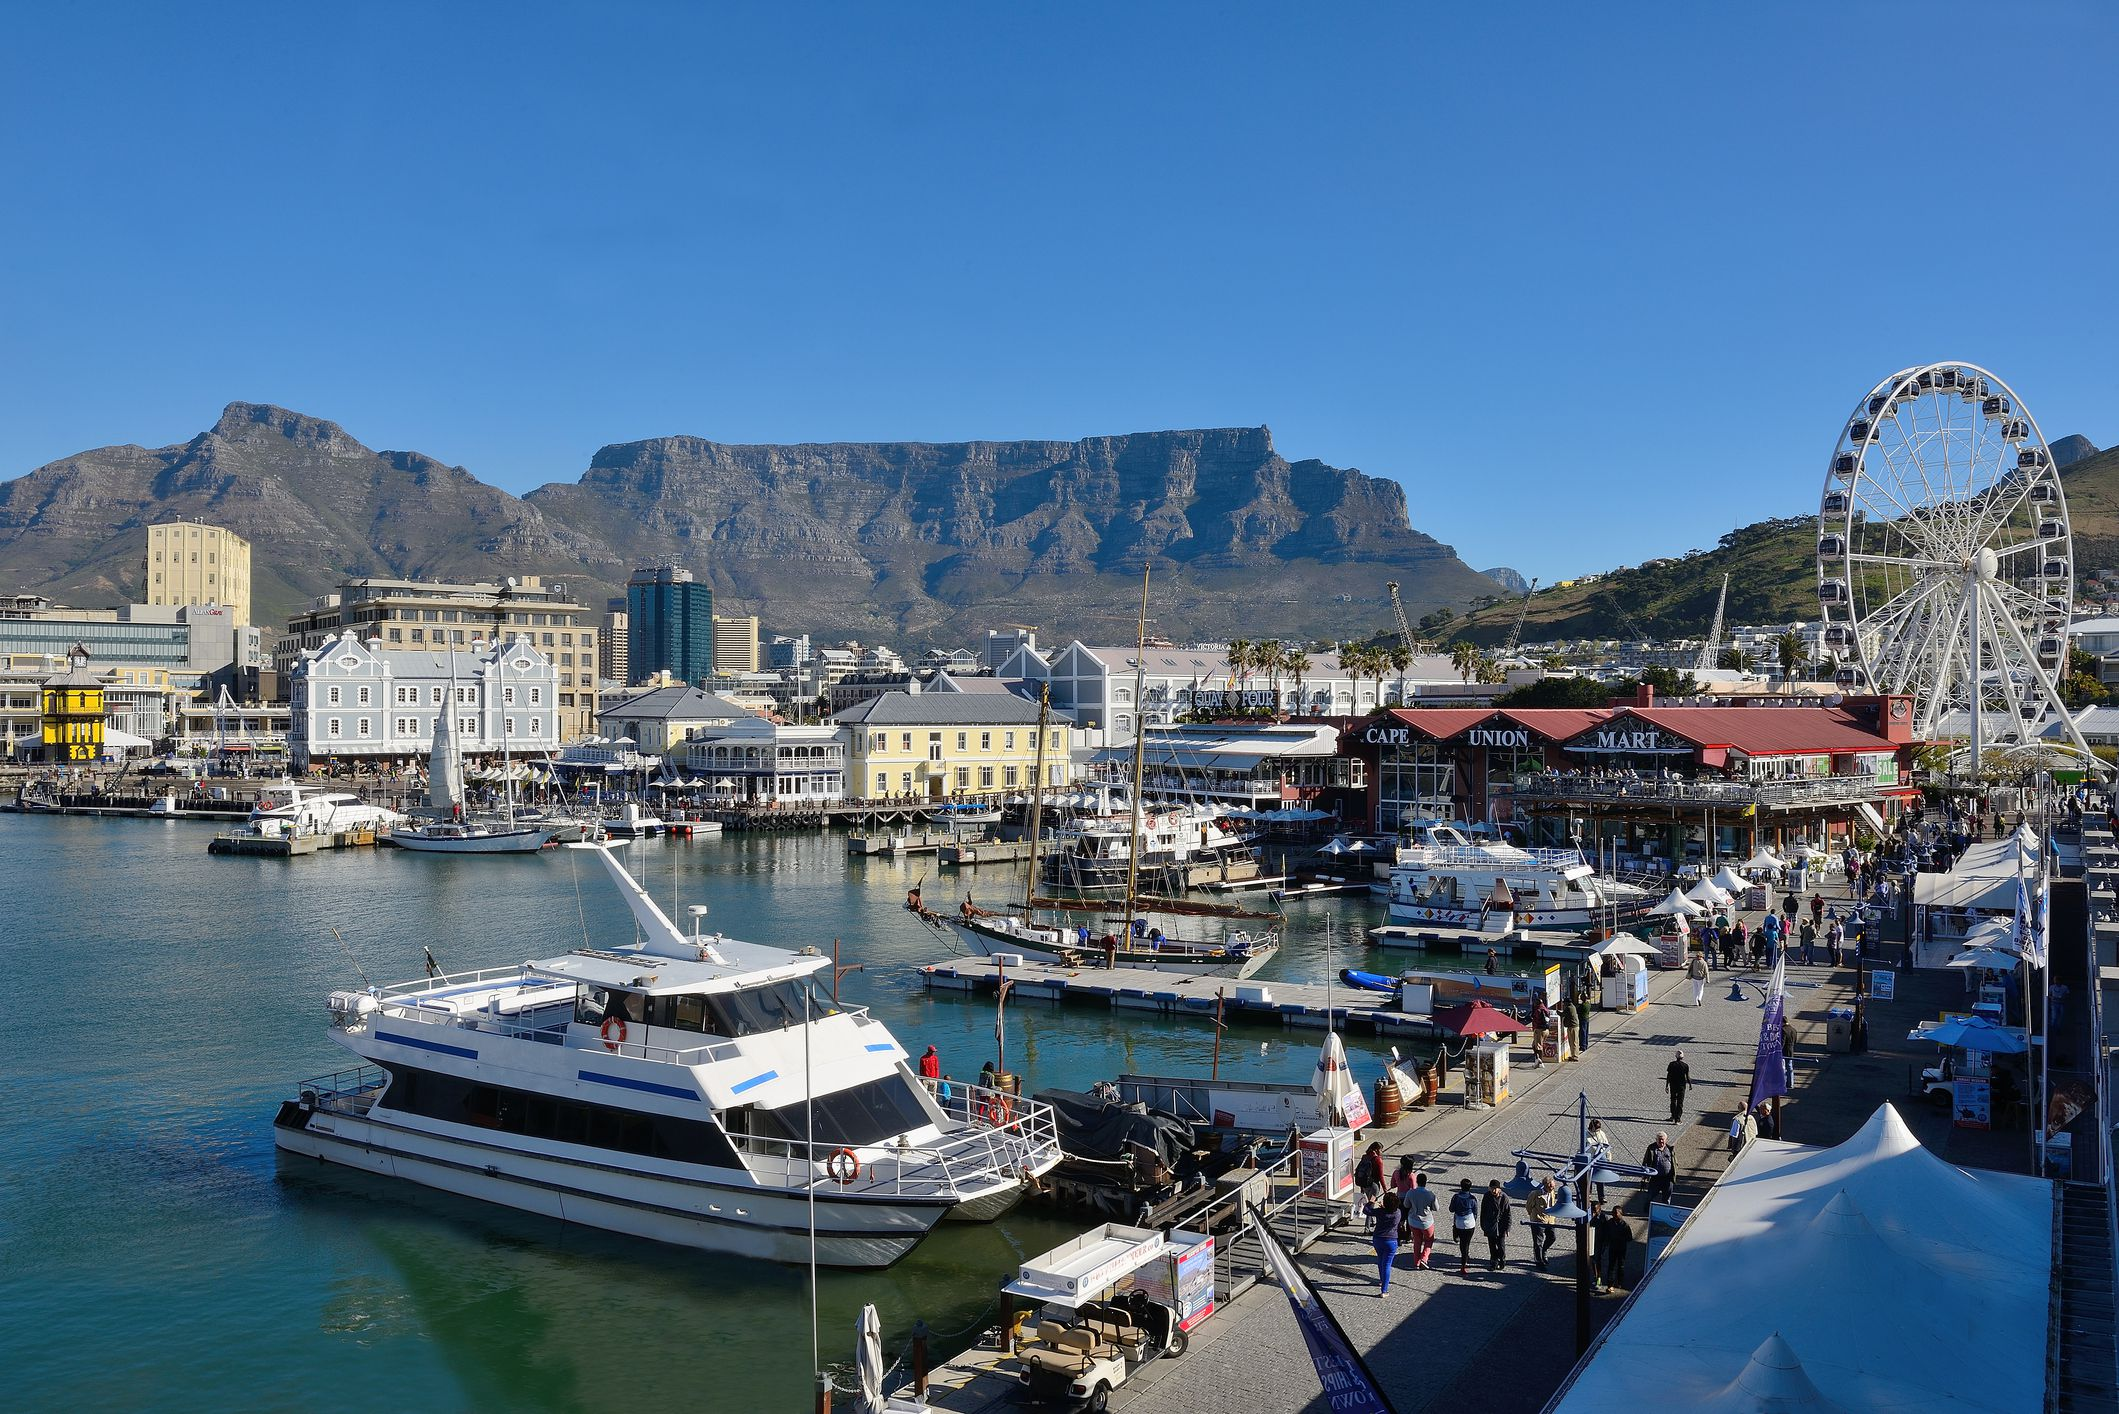 R3.9billion V&A Waterfront expansion gives major boost to ongoing economic recovery in Cape Town